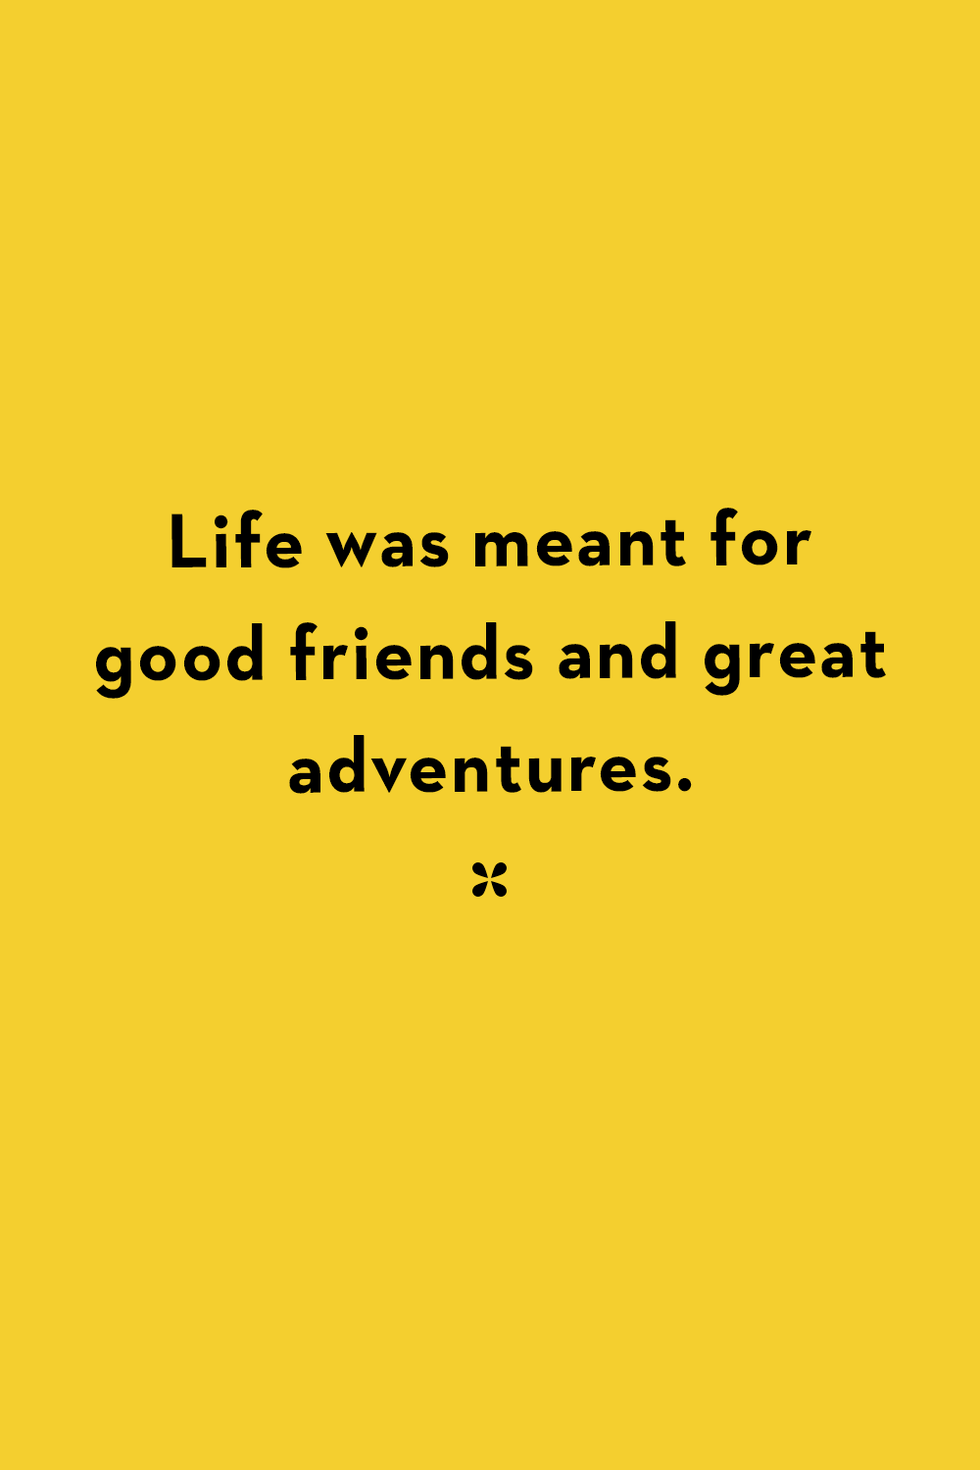 friendship-day-quotes-13